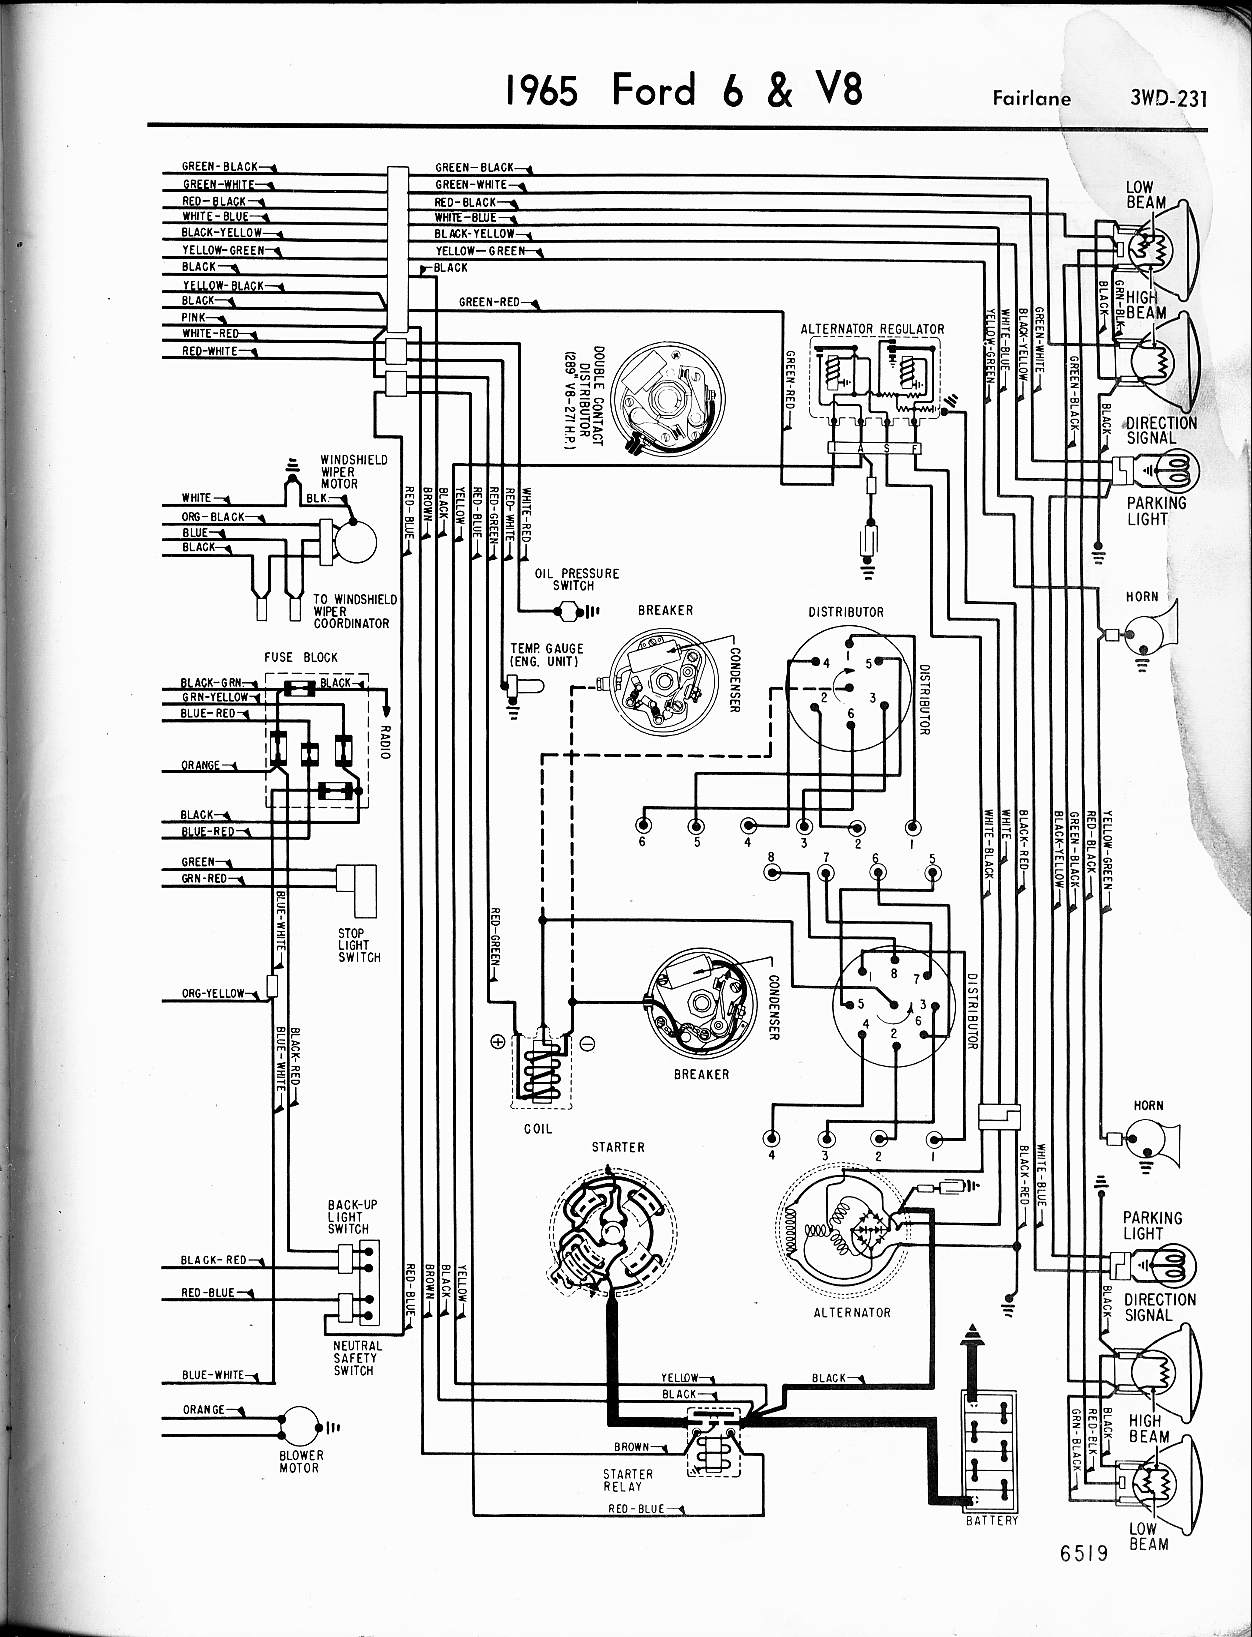 1966 Ford Falcon Wiring Light Switch - Data Wiring Diagram Today Au Falcon Wiring Diagram on ar diagram, pe diagram, vg diagram, ac diagram, cd diagram, vn diagram, pt diagram, ro diagram, ba diagram,